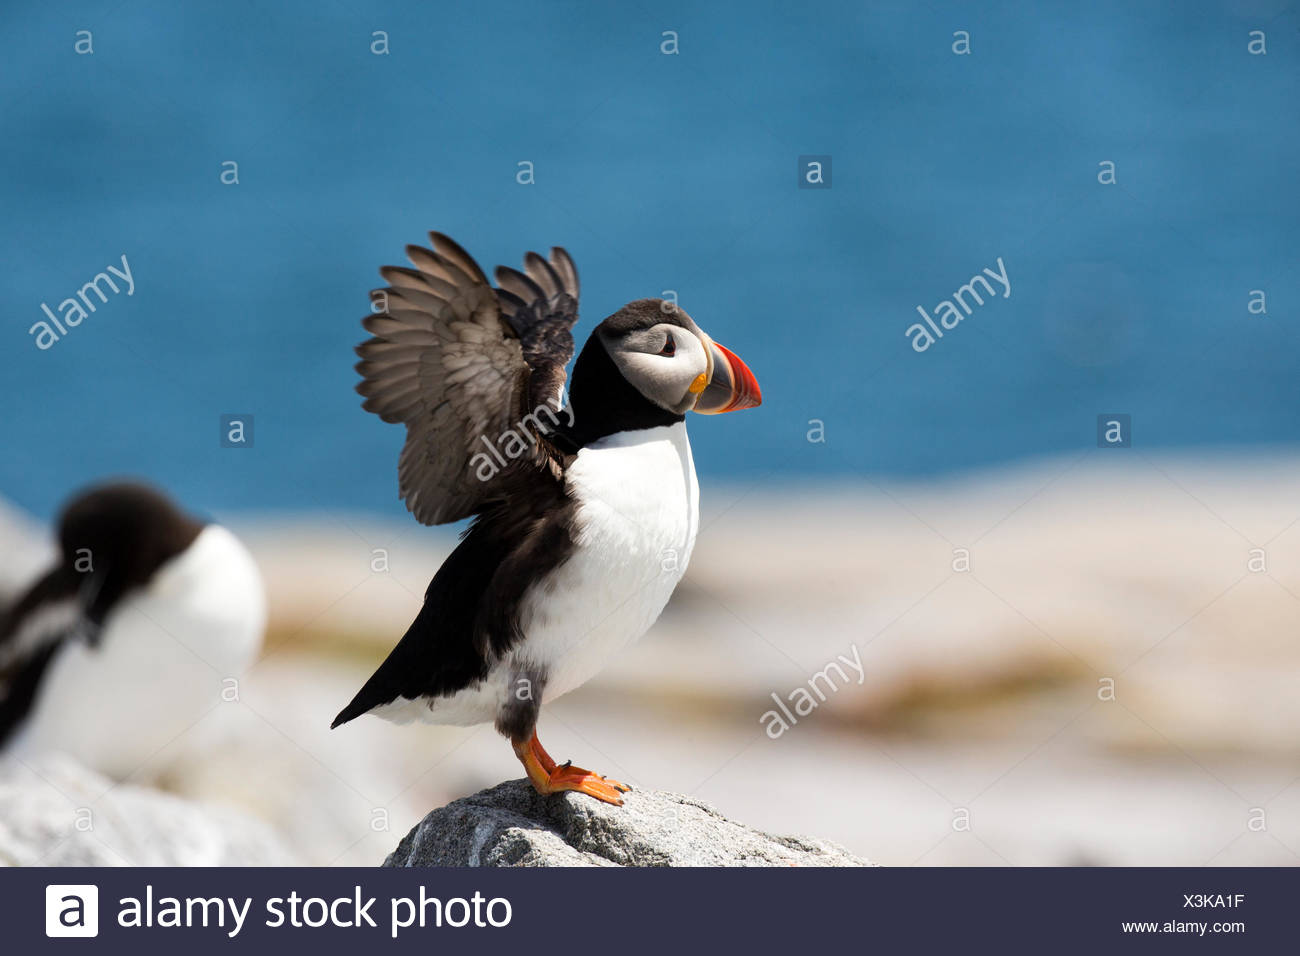 An Atlantic puffin,Fratercula arctica,spreads its wings. Stock Photo